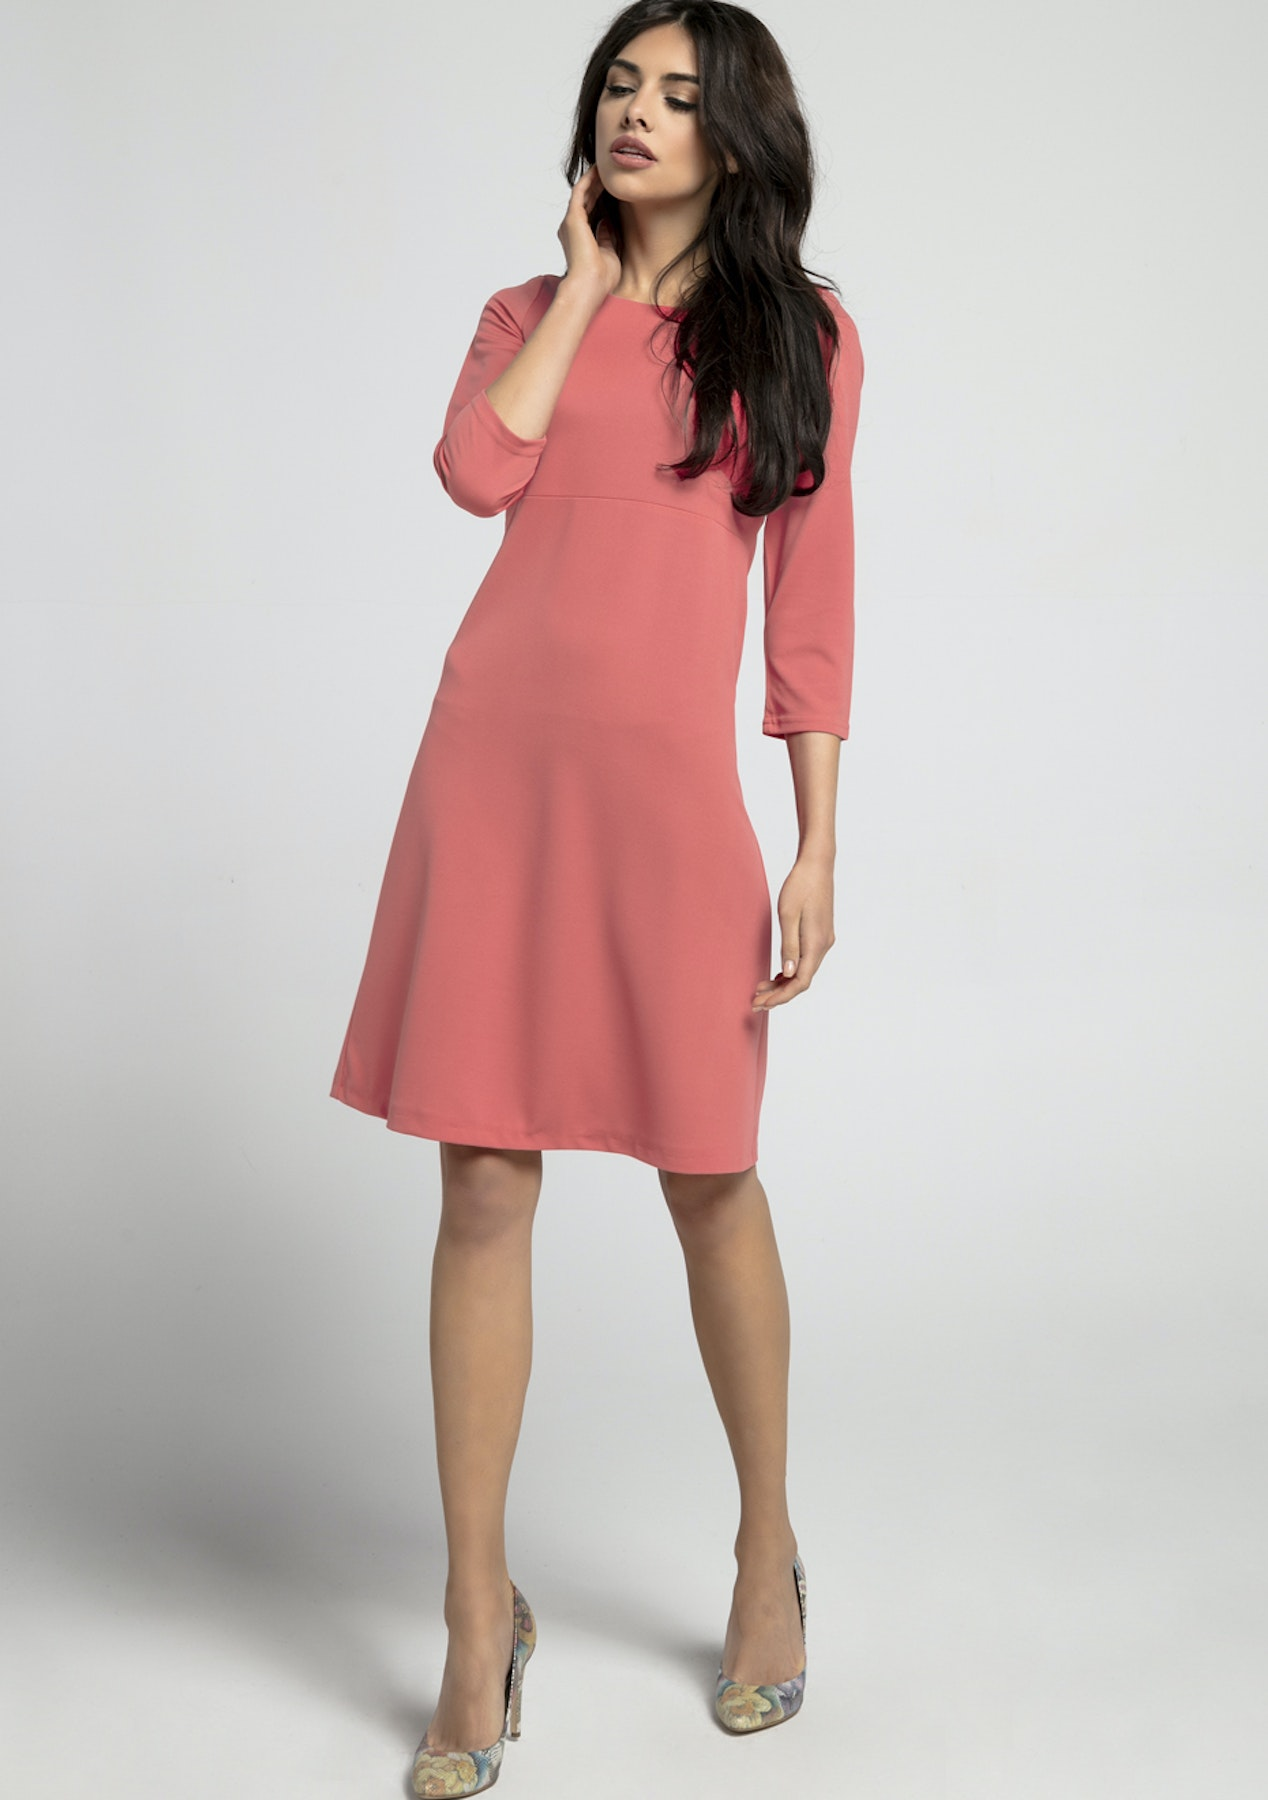 2920e8fc5197 1st Sominium - Knit Dress - Raspberry - Spring Fashion Nothing Over  70 -  Onceit